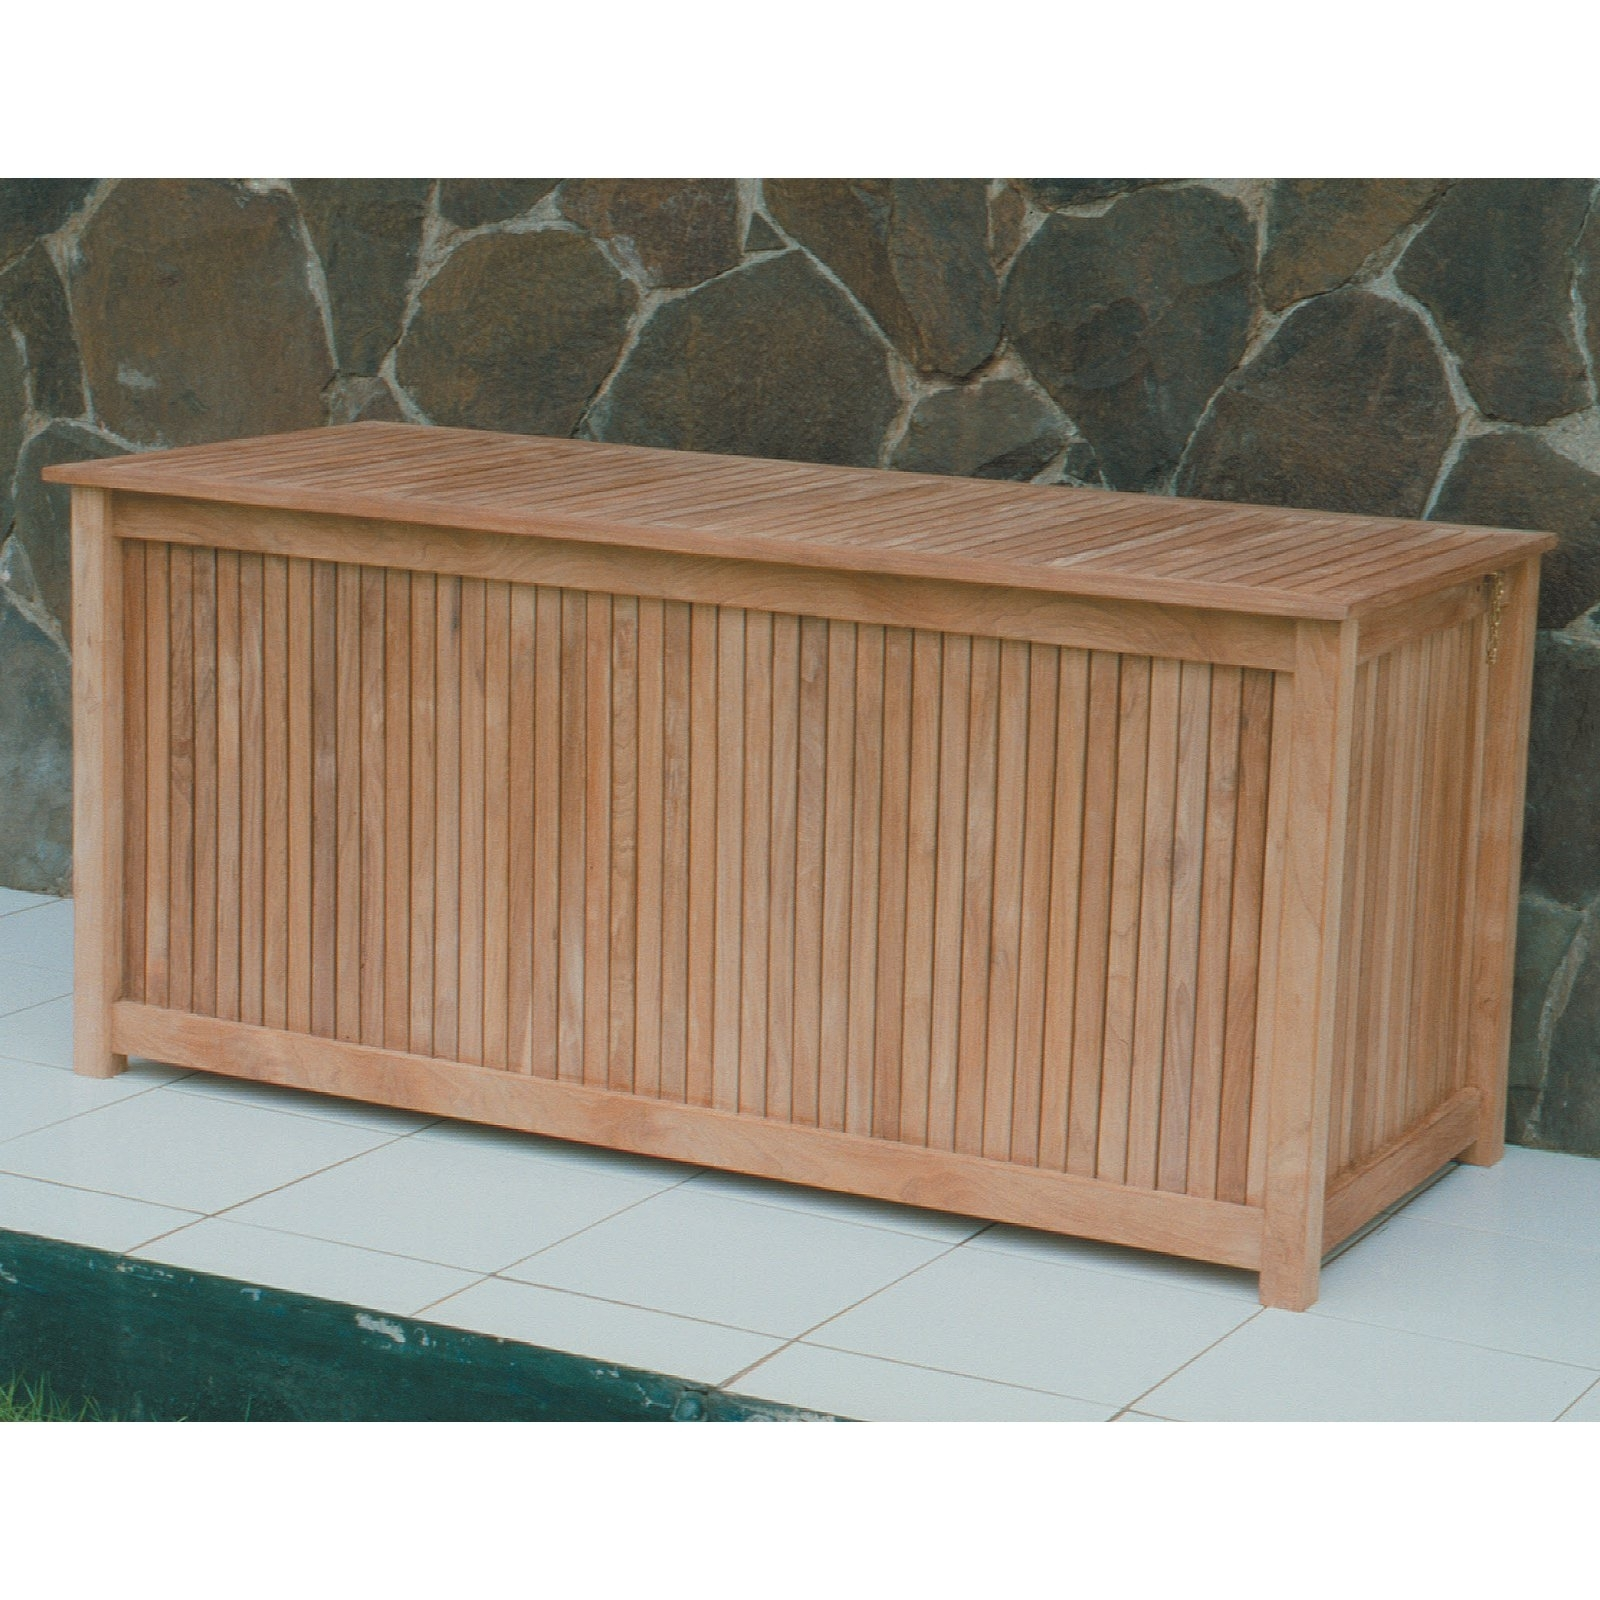 Image of: Royal Teak 53 In 80 Gallon Storage Deck Box Hayneedle In Storage For Outdoor Cushions Store Storage For Outdoor Cushions